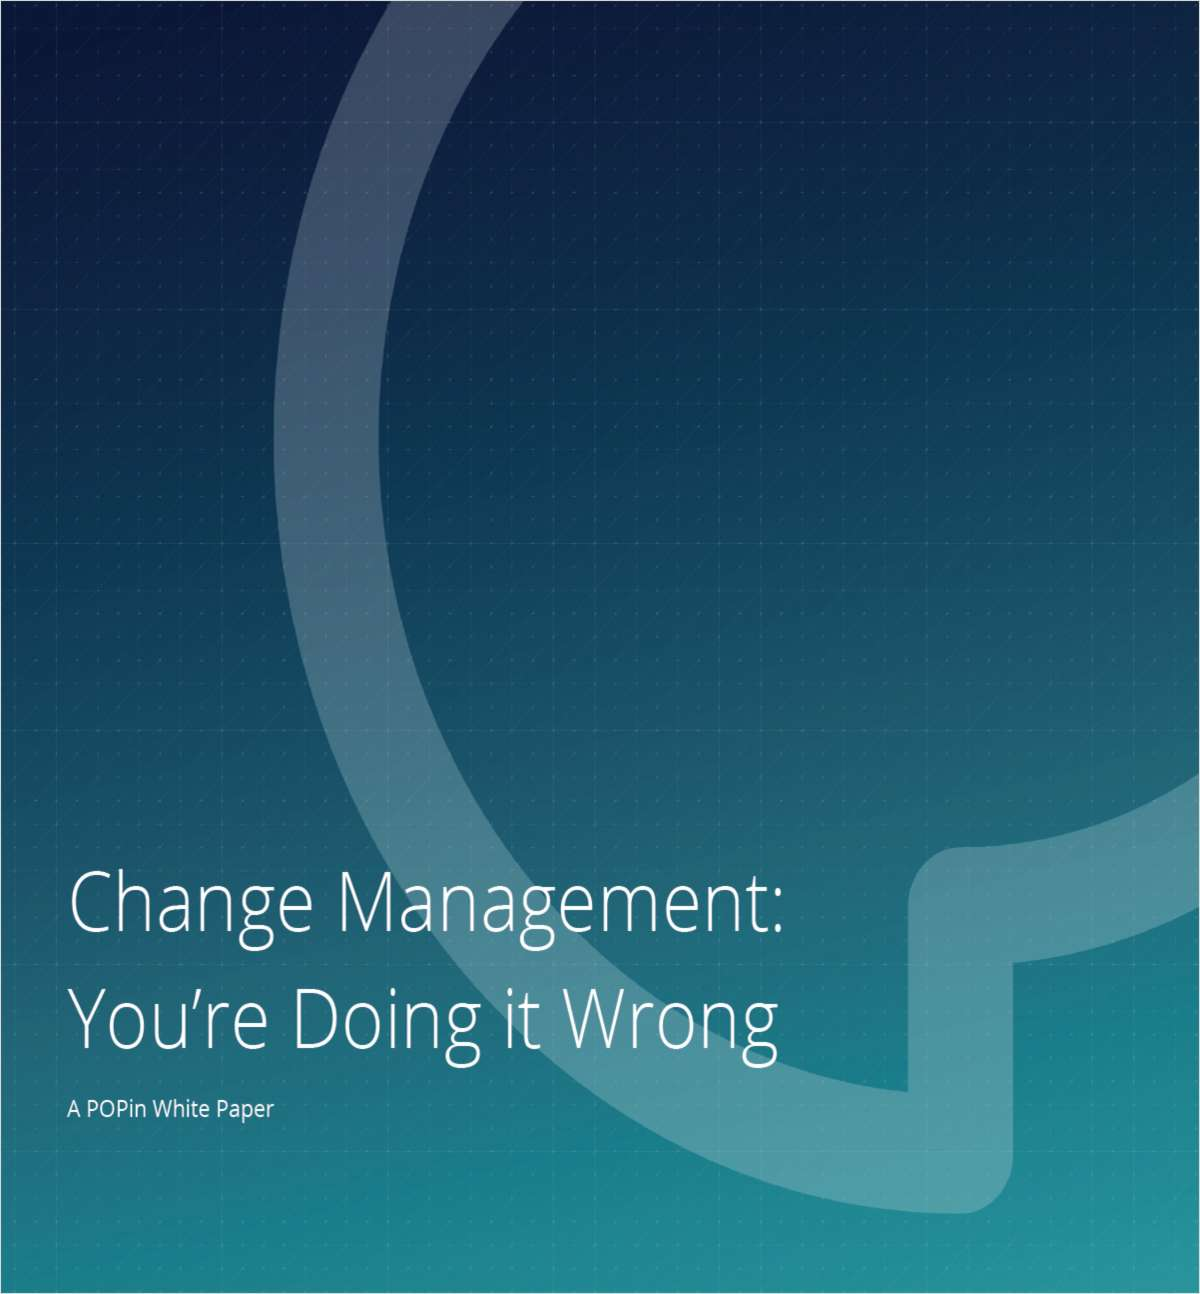 Change Management. You're Doing it Wrong.